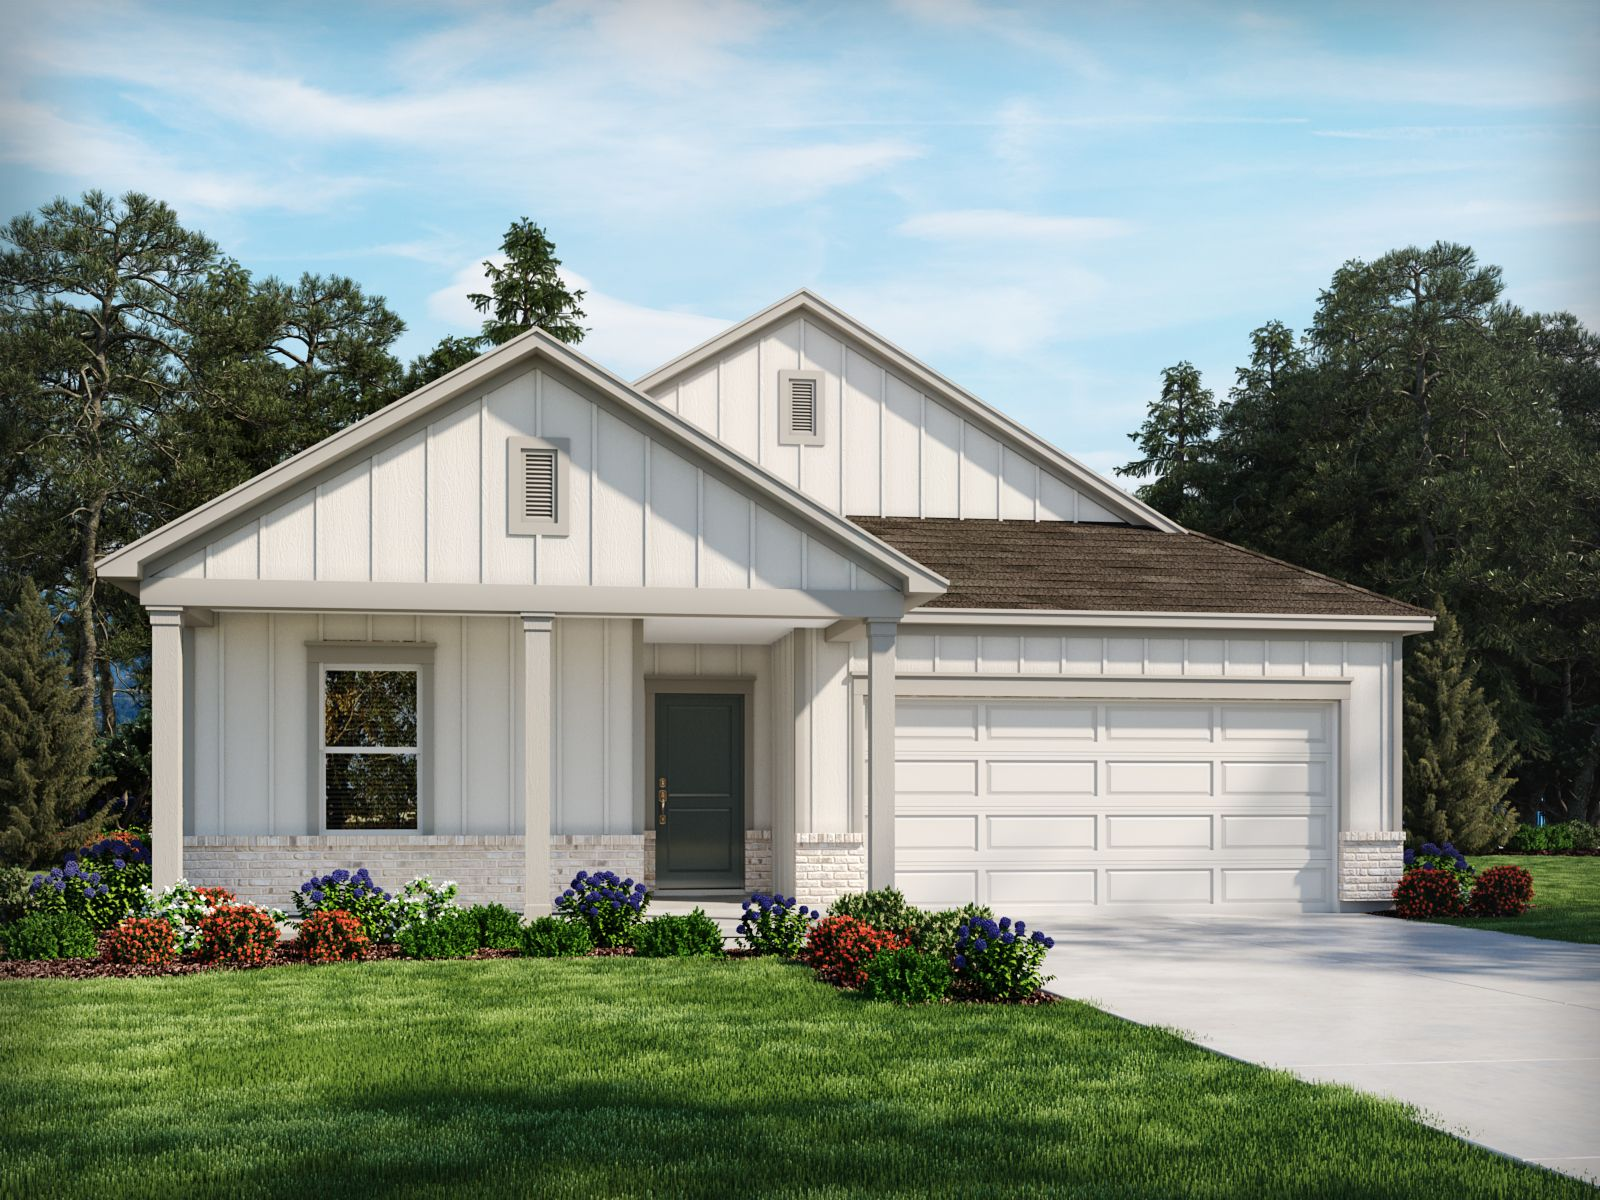 New Construction Homes & Plans in Antioch, TN | 1,826 Homes | NewHomeSource